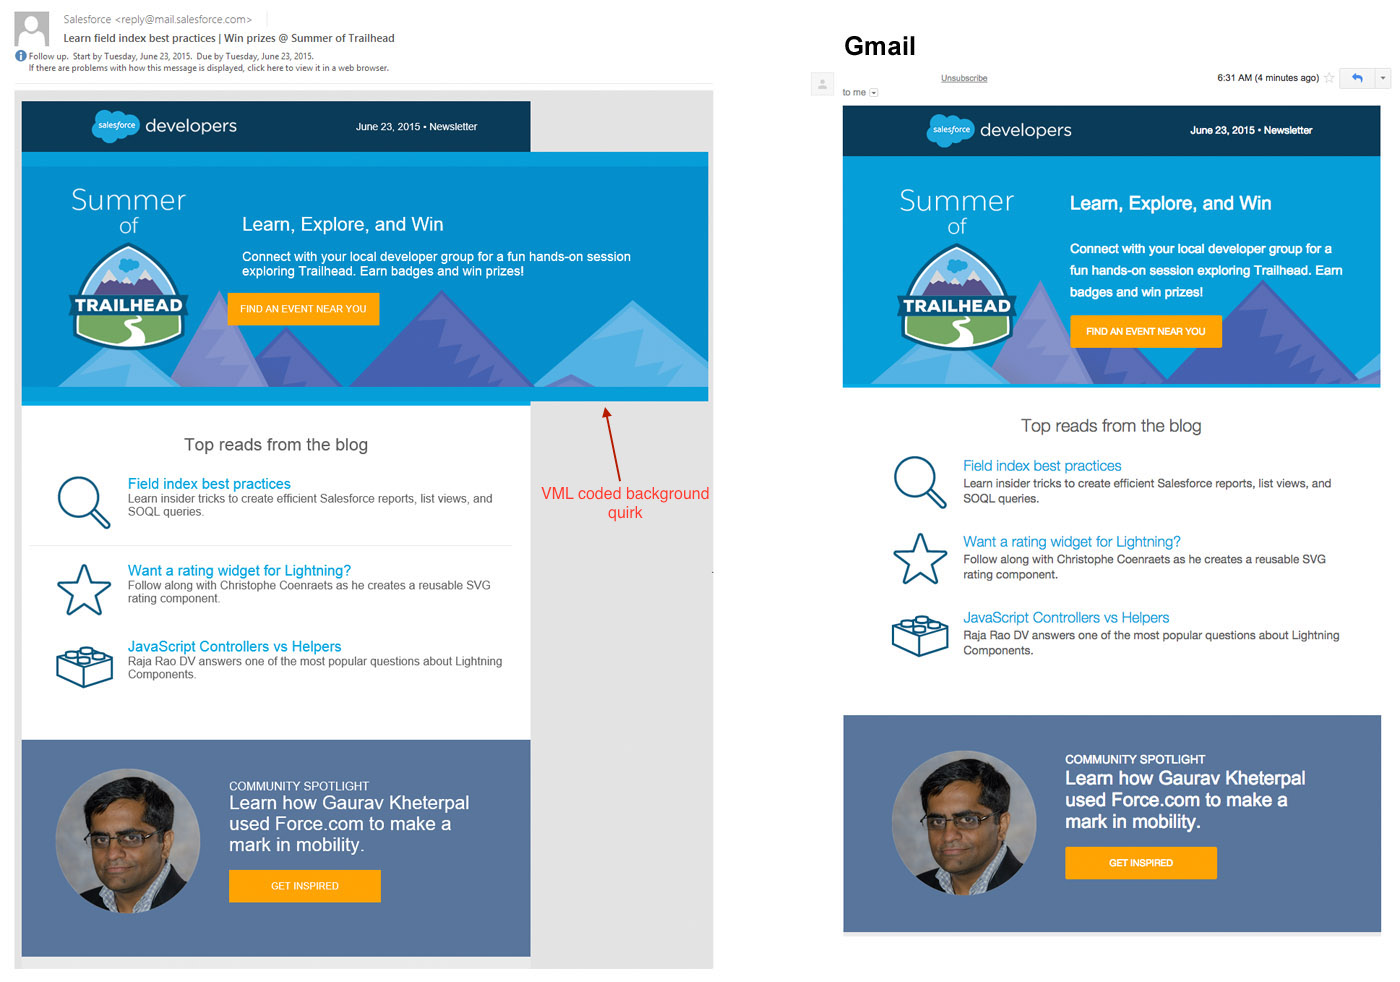 Email background image outlook - This Email Uses The Vml Background Image Hack Since Vml Cannot Be Tested In A Browser This Can Lead To Unexpected Rendering Quirks